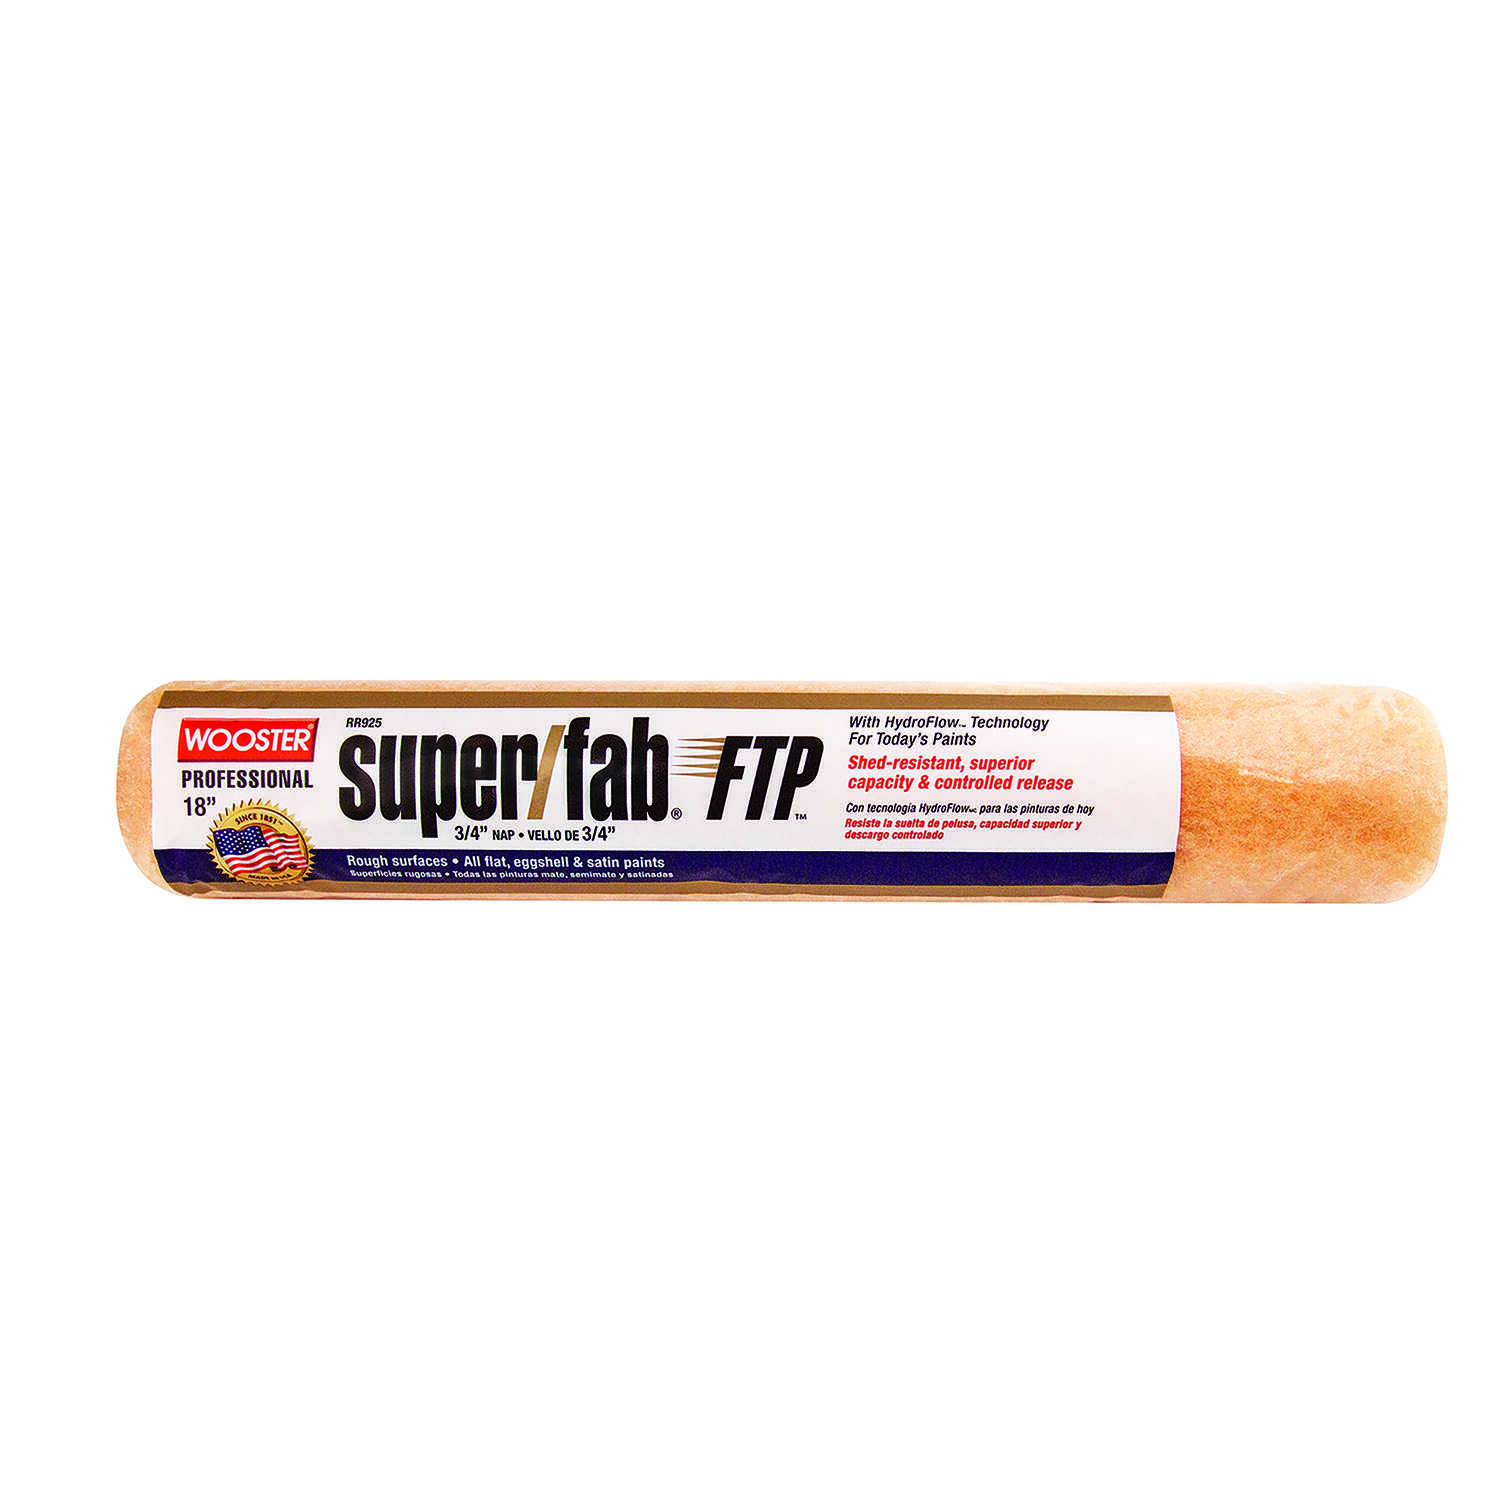 Wooster  Super/Fab FTP  Synthetic Blend  3/4 in.  x 18 in. W Regular  Paint Roller Cover  For Rough